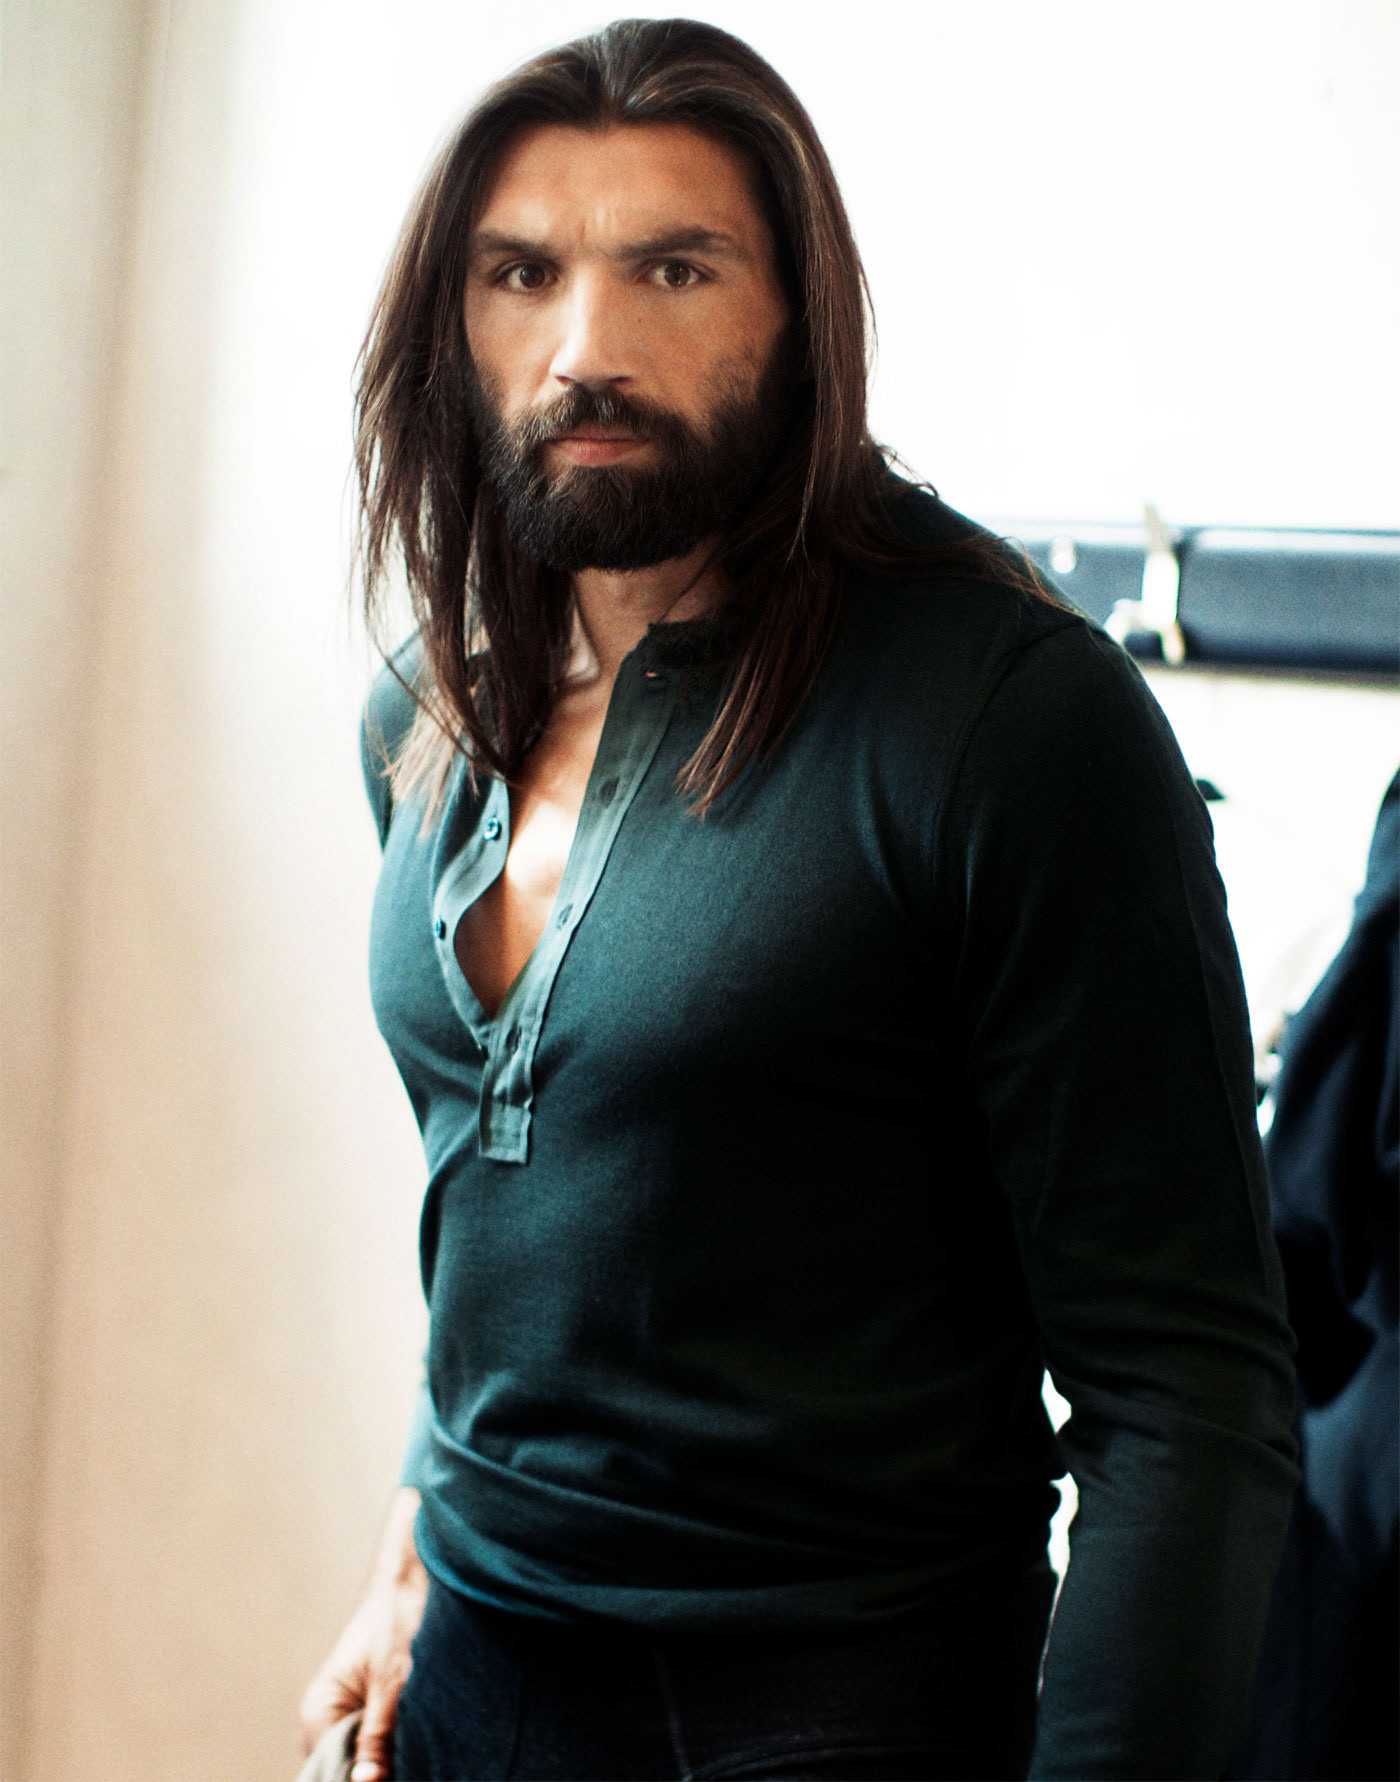 Giampaolo Vimercati Photographer Sebastien Chabal Rugby Player